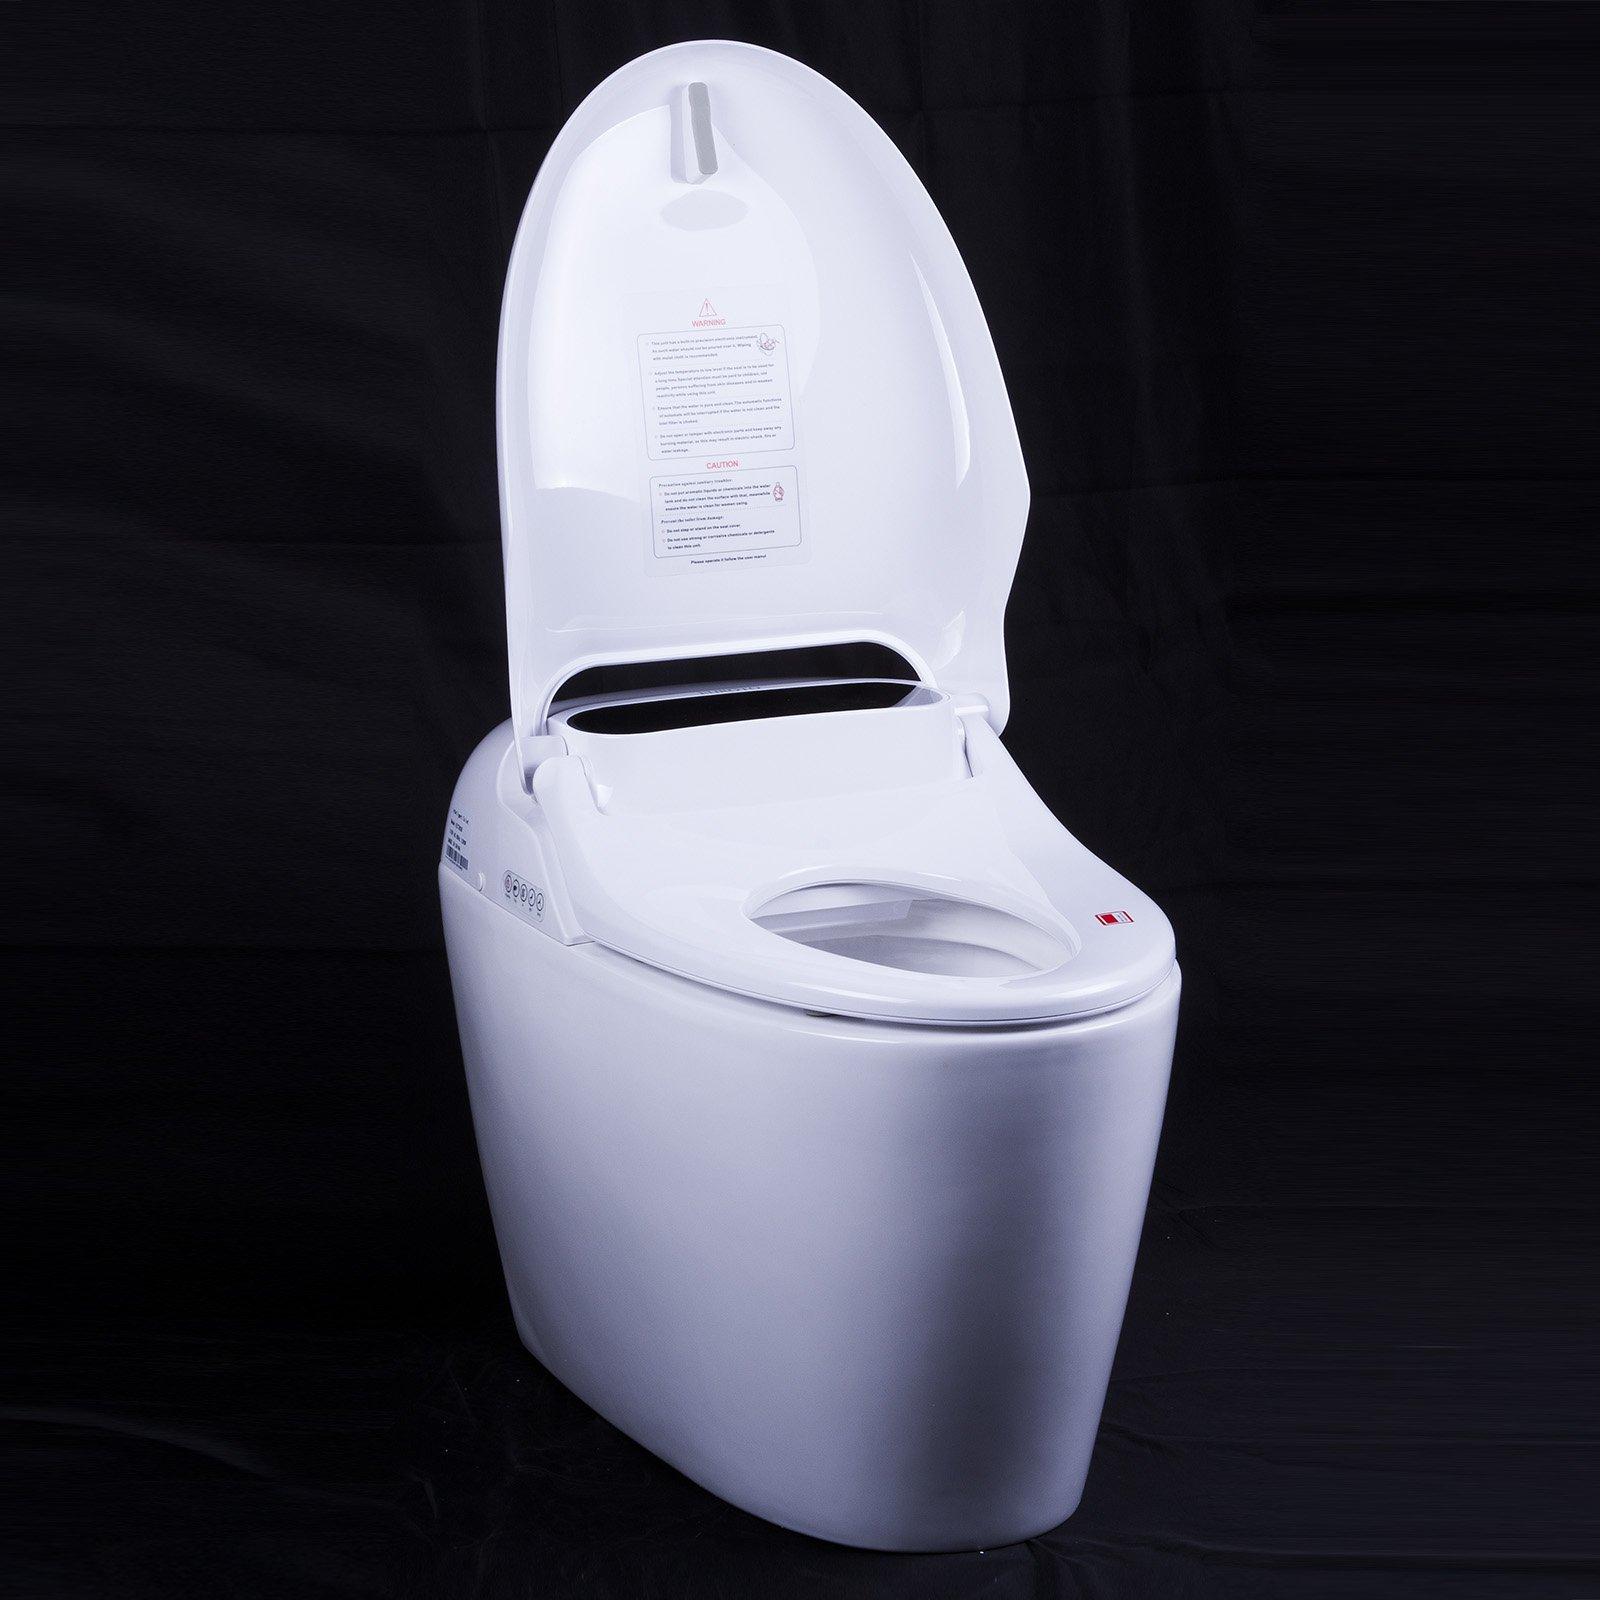 Euroto Luxury Smart Toilet One Piece Toilet with Soft Closing Heated Seat European Design Elongated for Bathroom Toilet Bowls, Toilets, and Toilet Seats by EUROTO (Image #5)